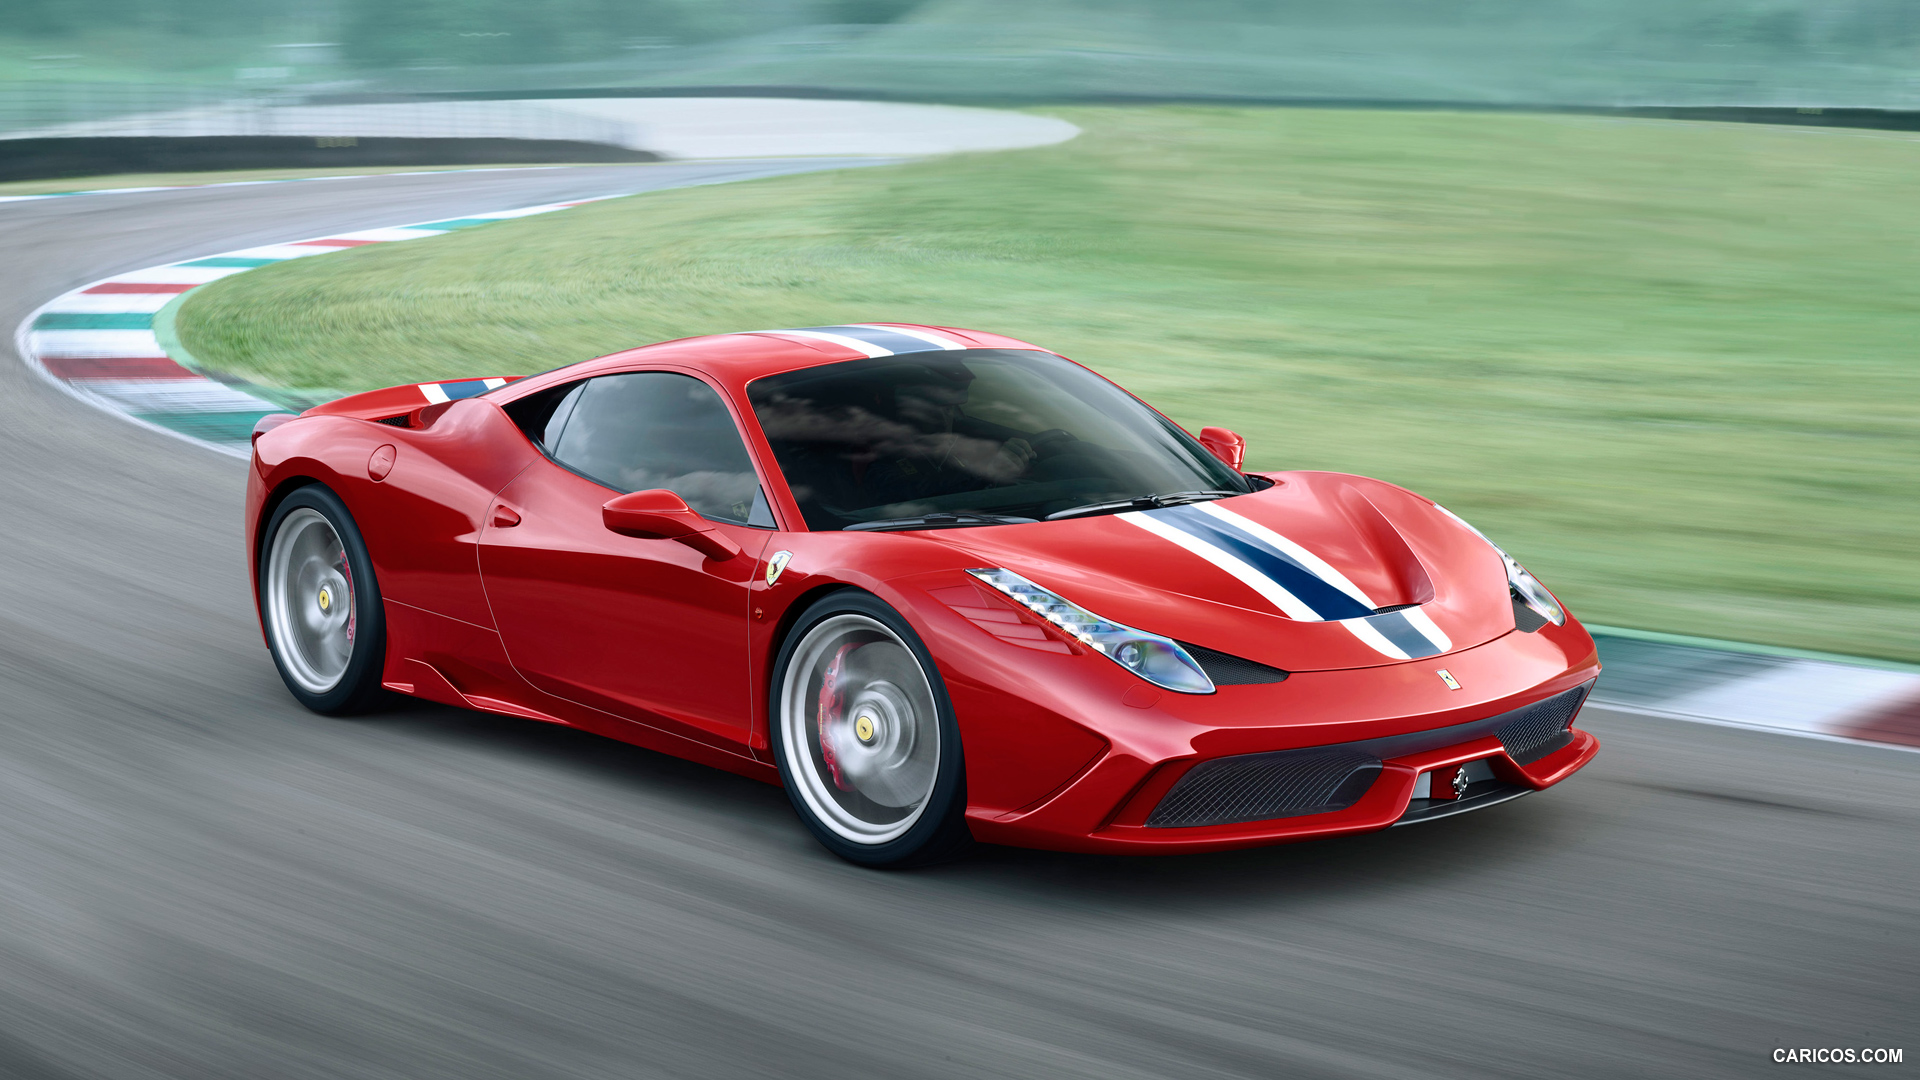 2014 ferrari 458 speciale 1 wallpaper 1920x1080 15803. Black Bedroom Furniture Sets. Home Design Ideas